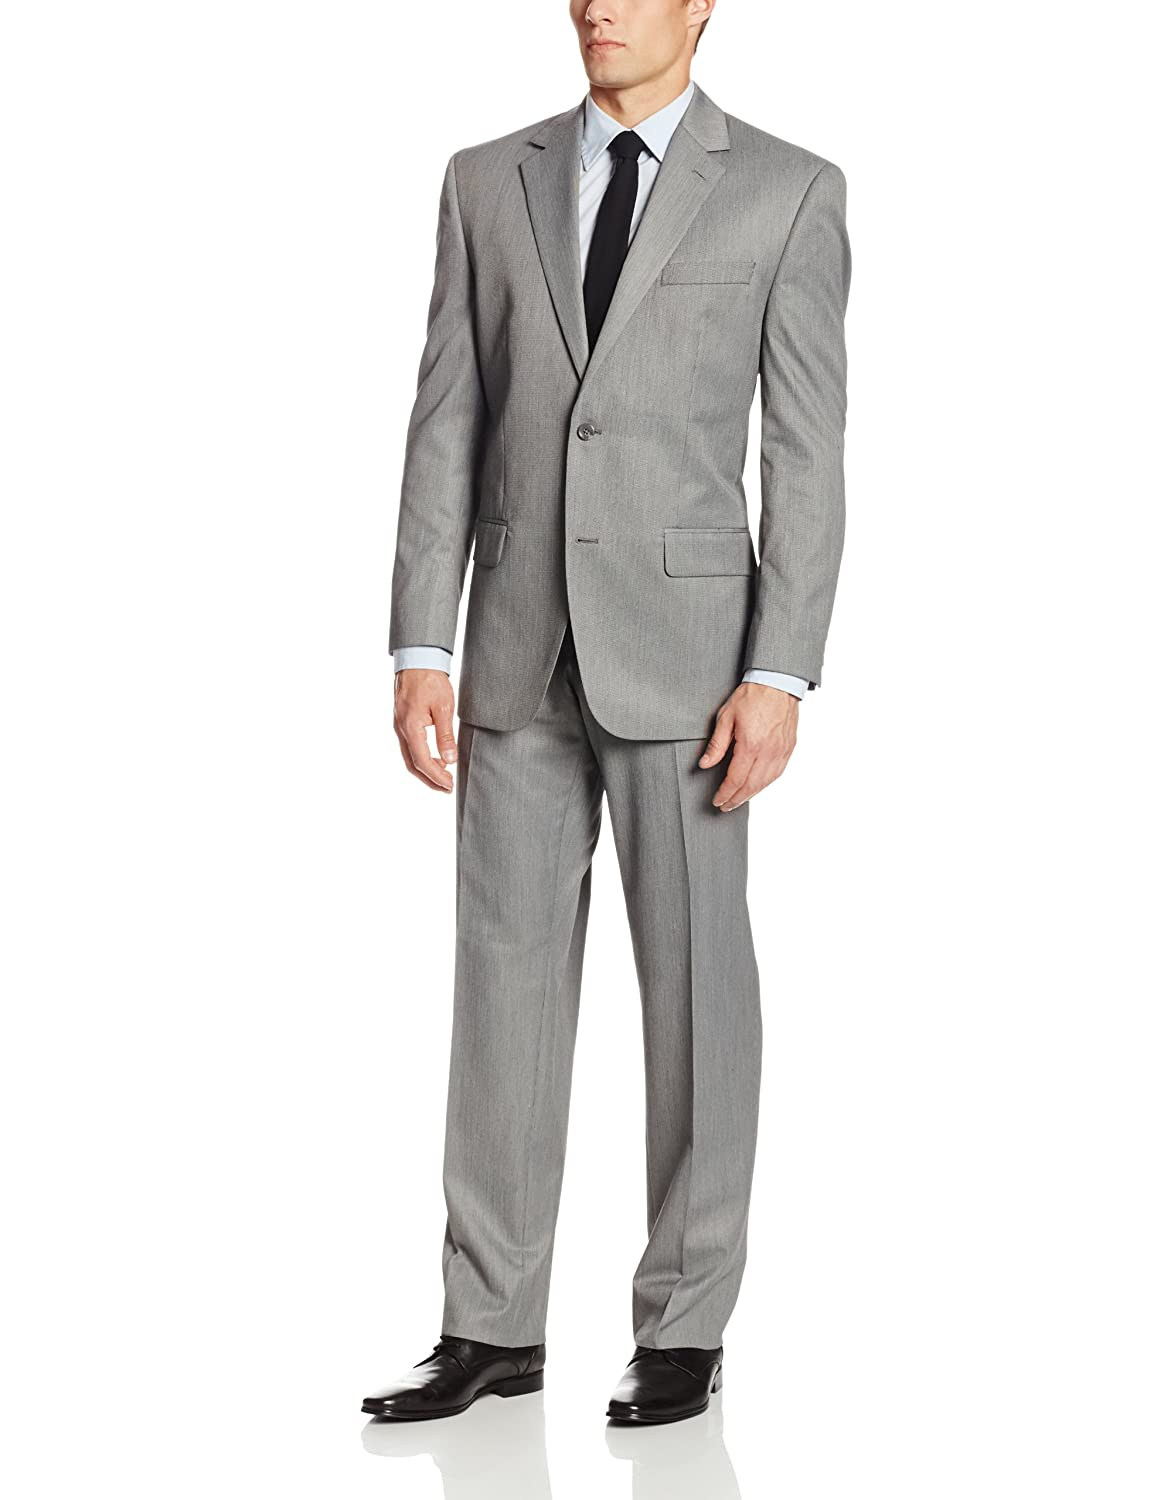 Bill Blass Men's Trent Tic Suit Calvin Klein Tailored